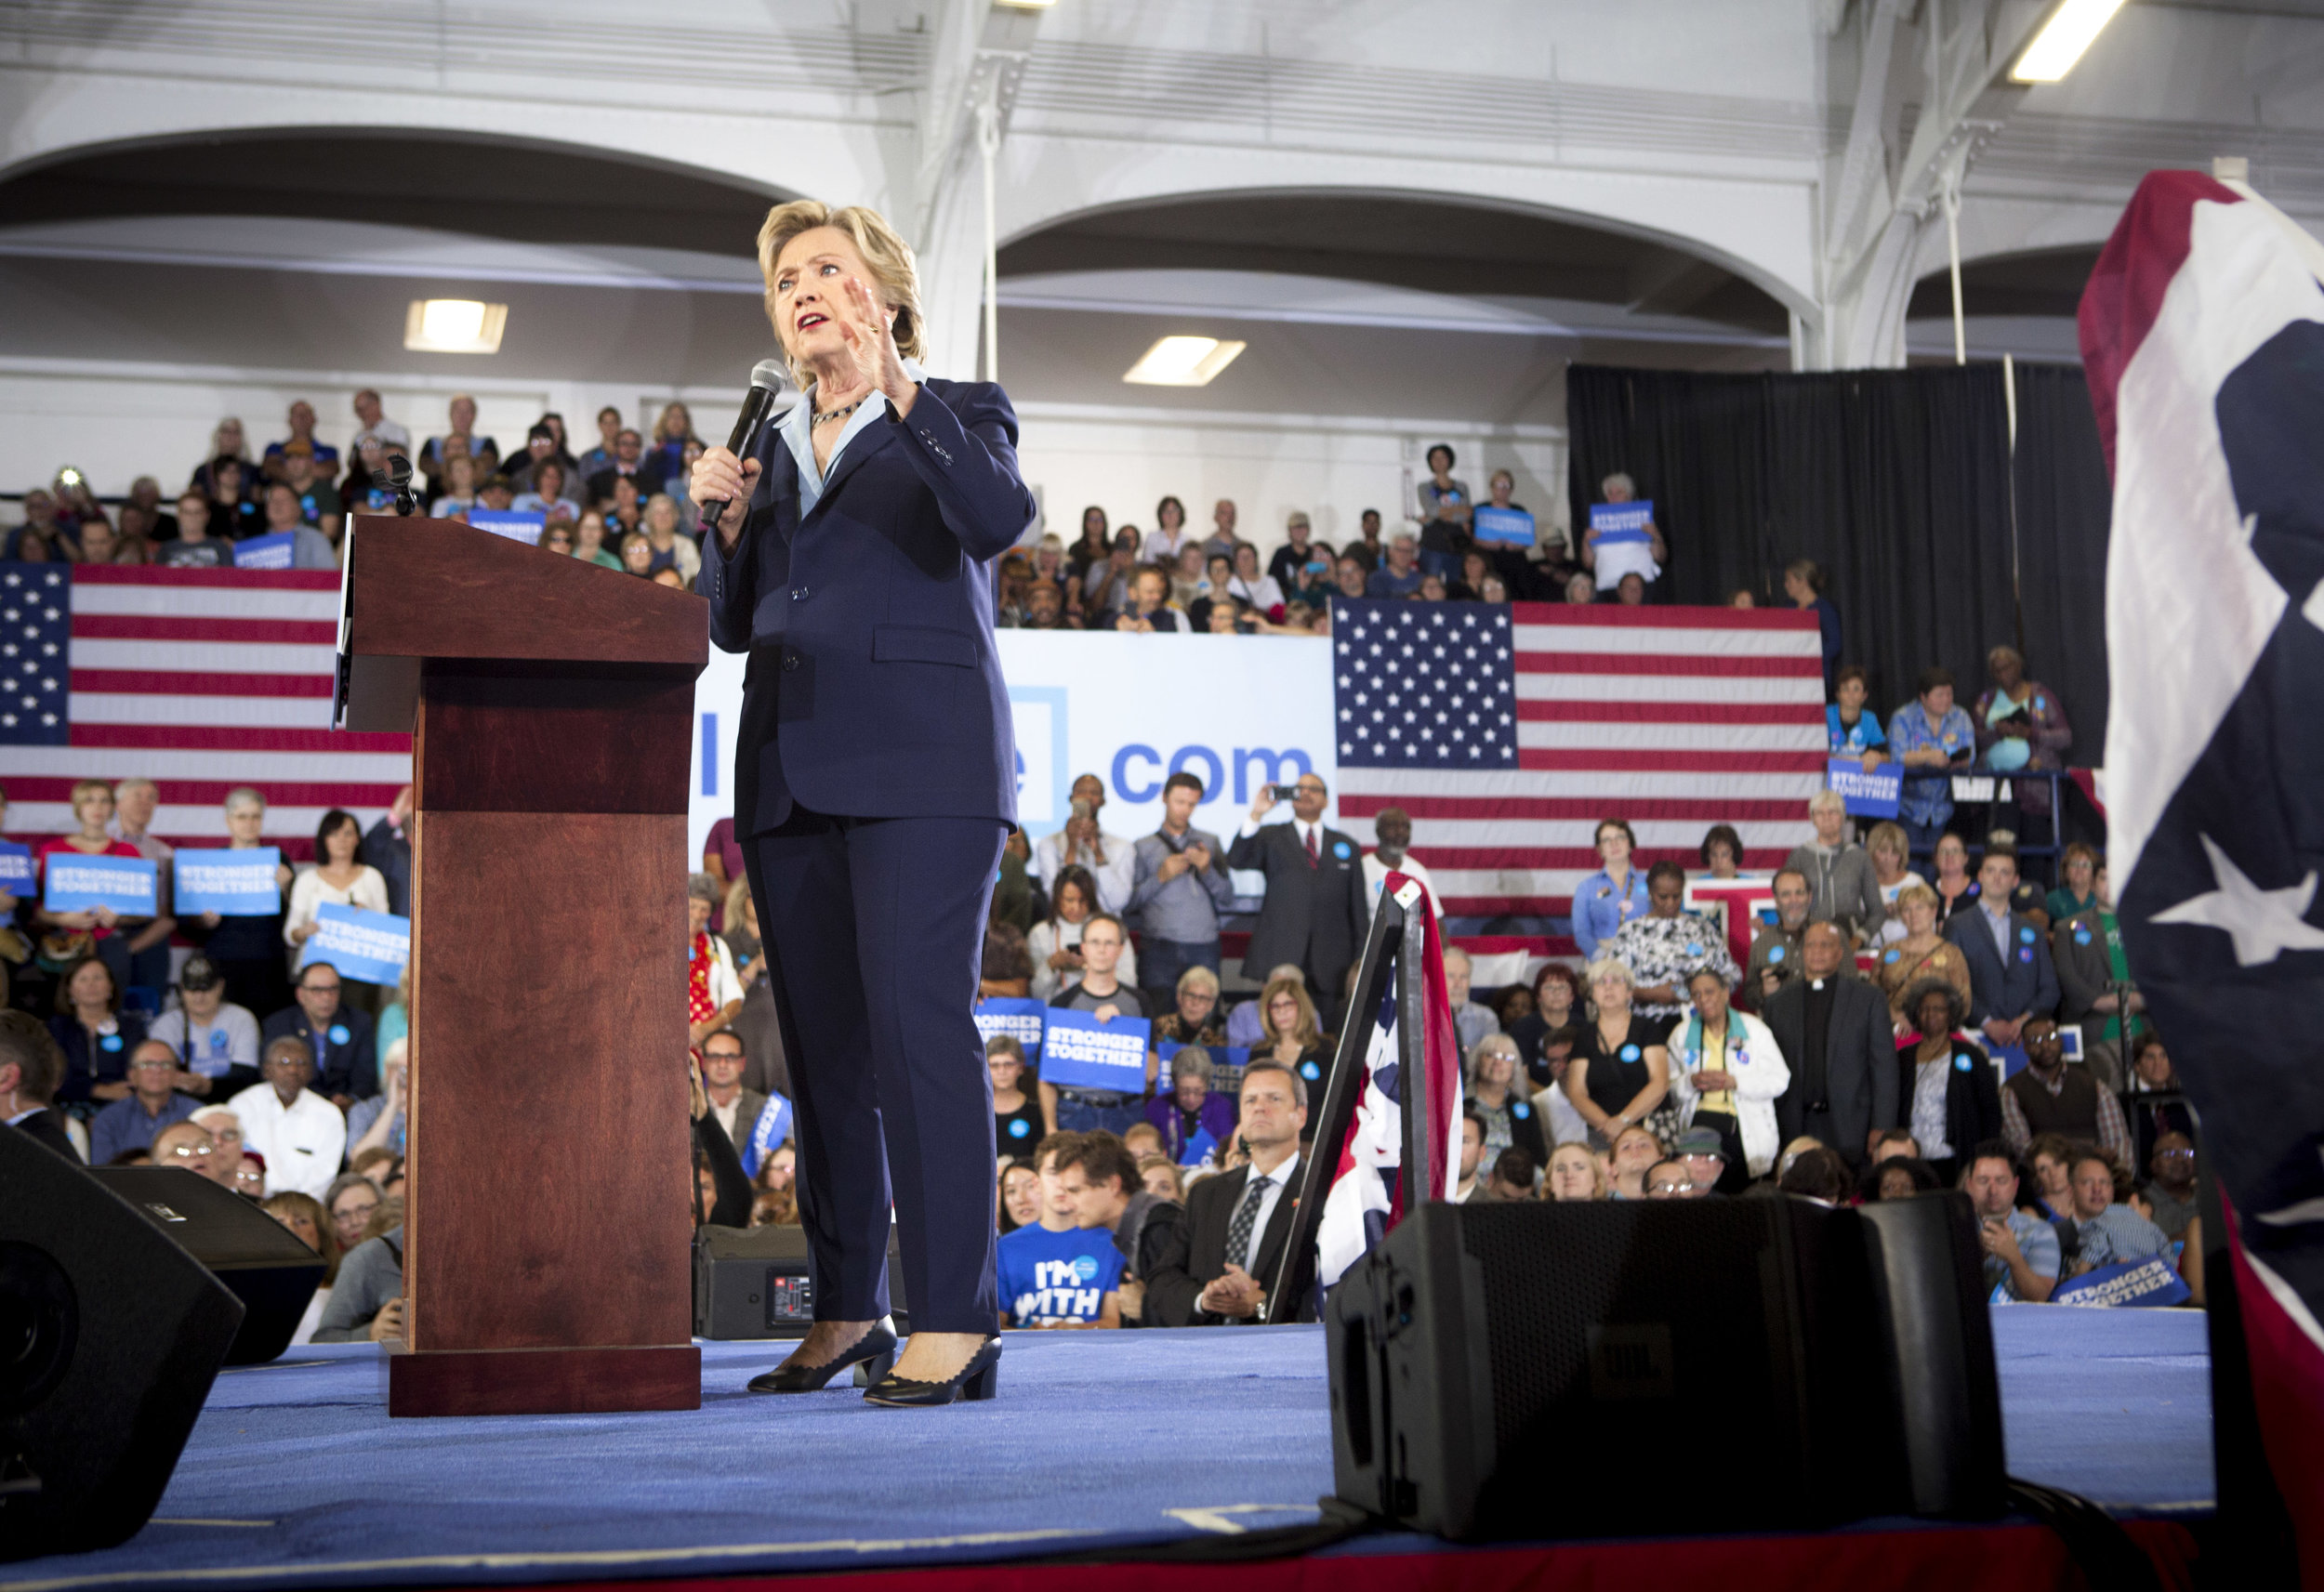 10032016_BJM_Hillary_Campaigns_in_Akron_Ohio_47.jpg